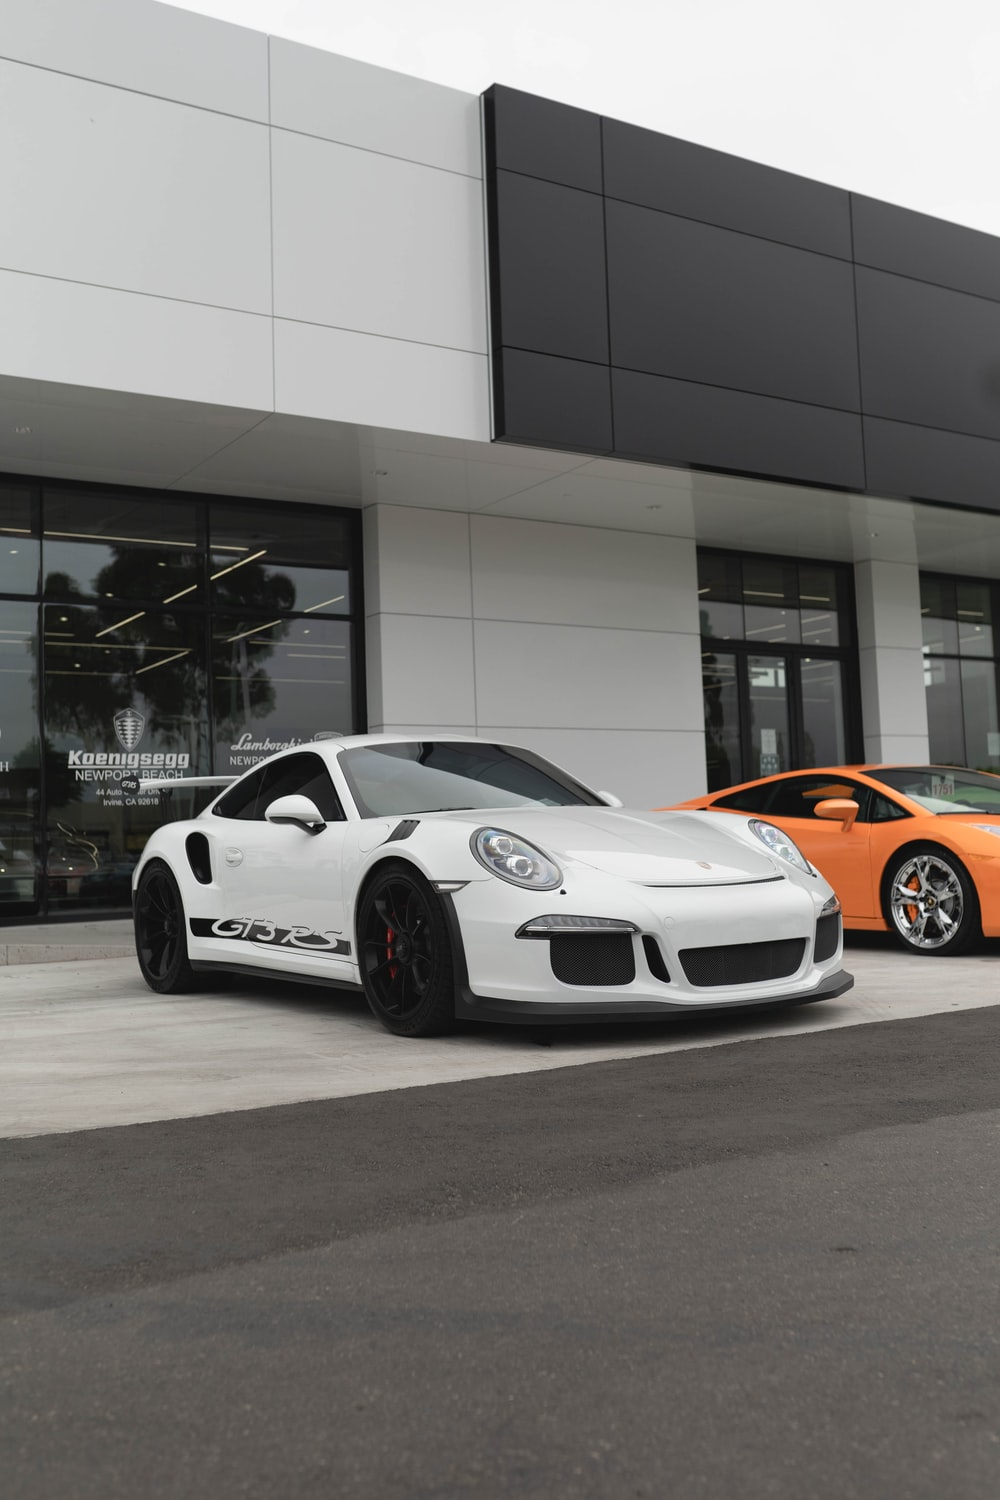 white and orange porsche 911 parked in front of white building